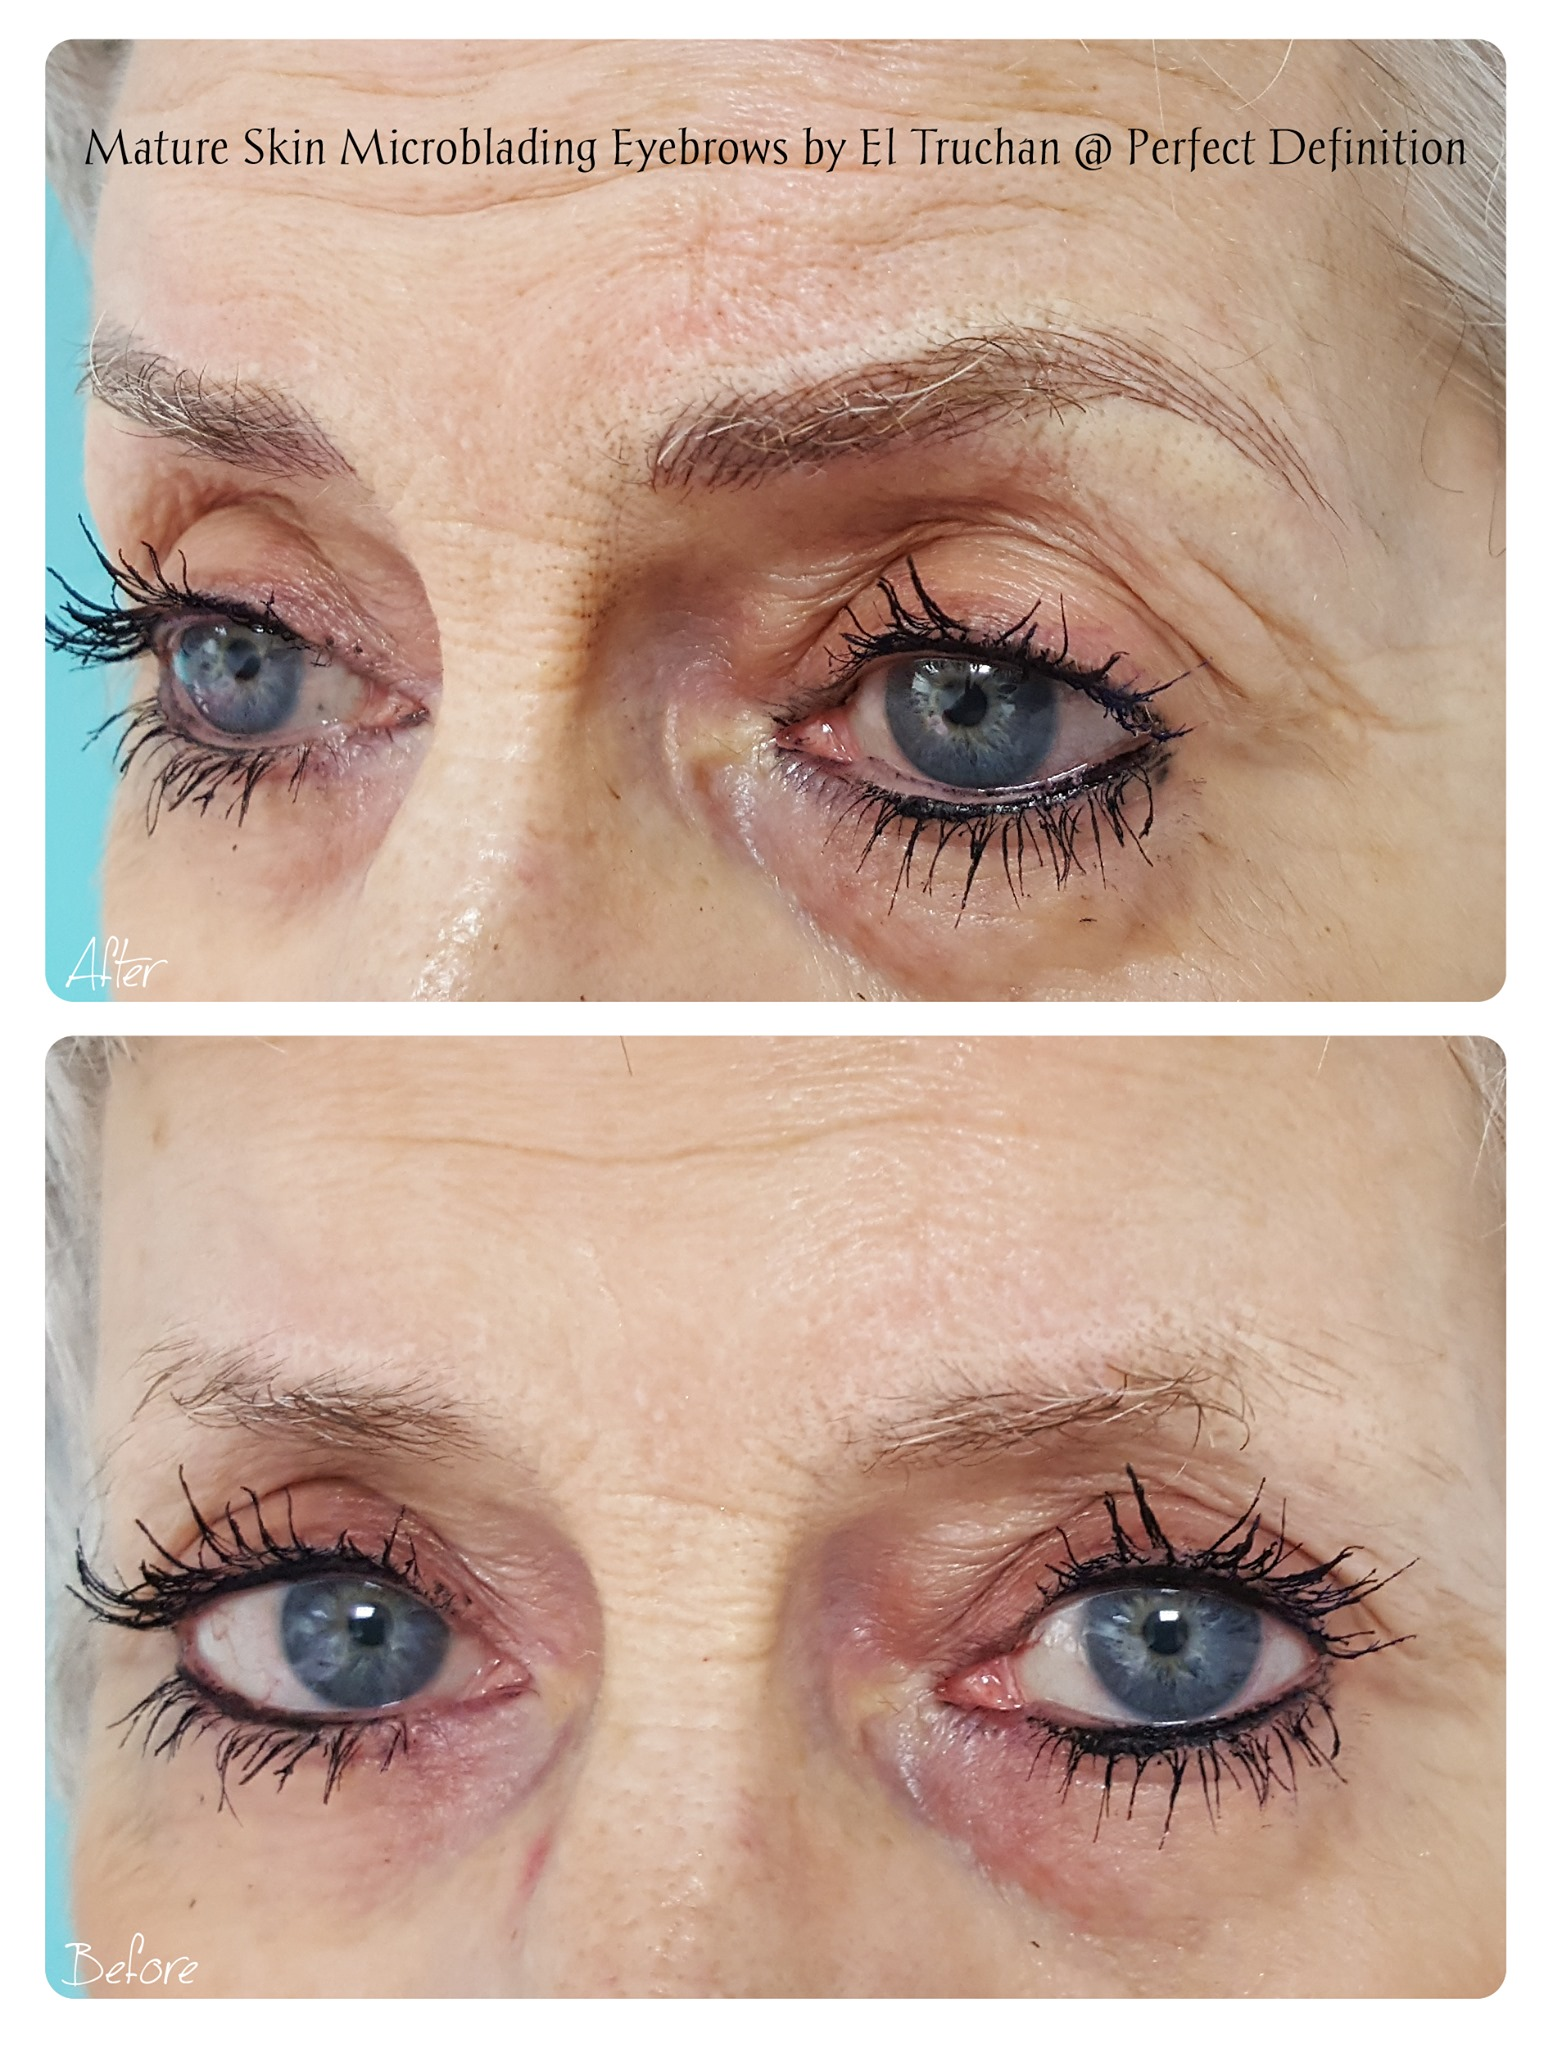 Mature Skin Microblading Eyebrows by El